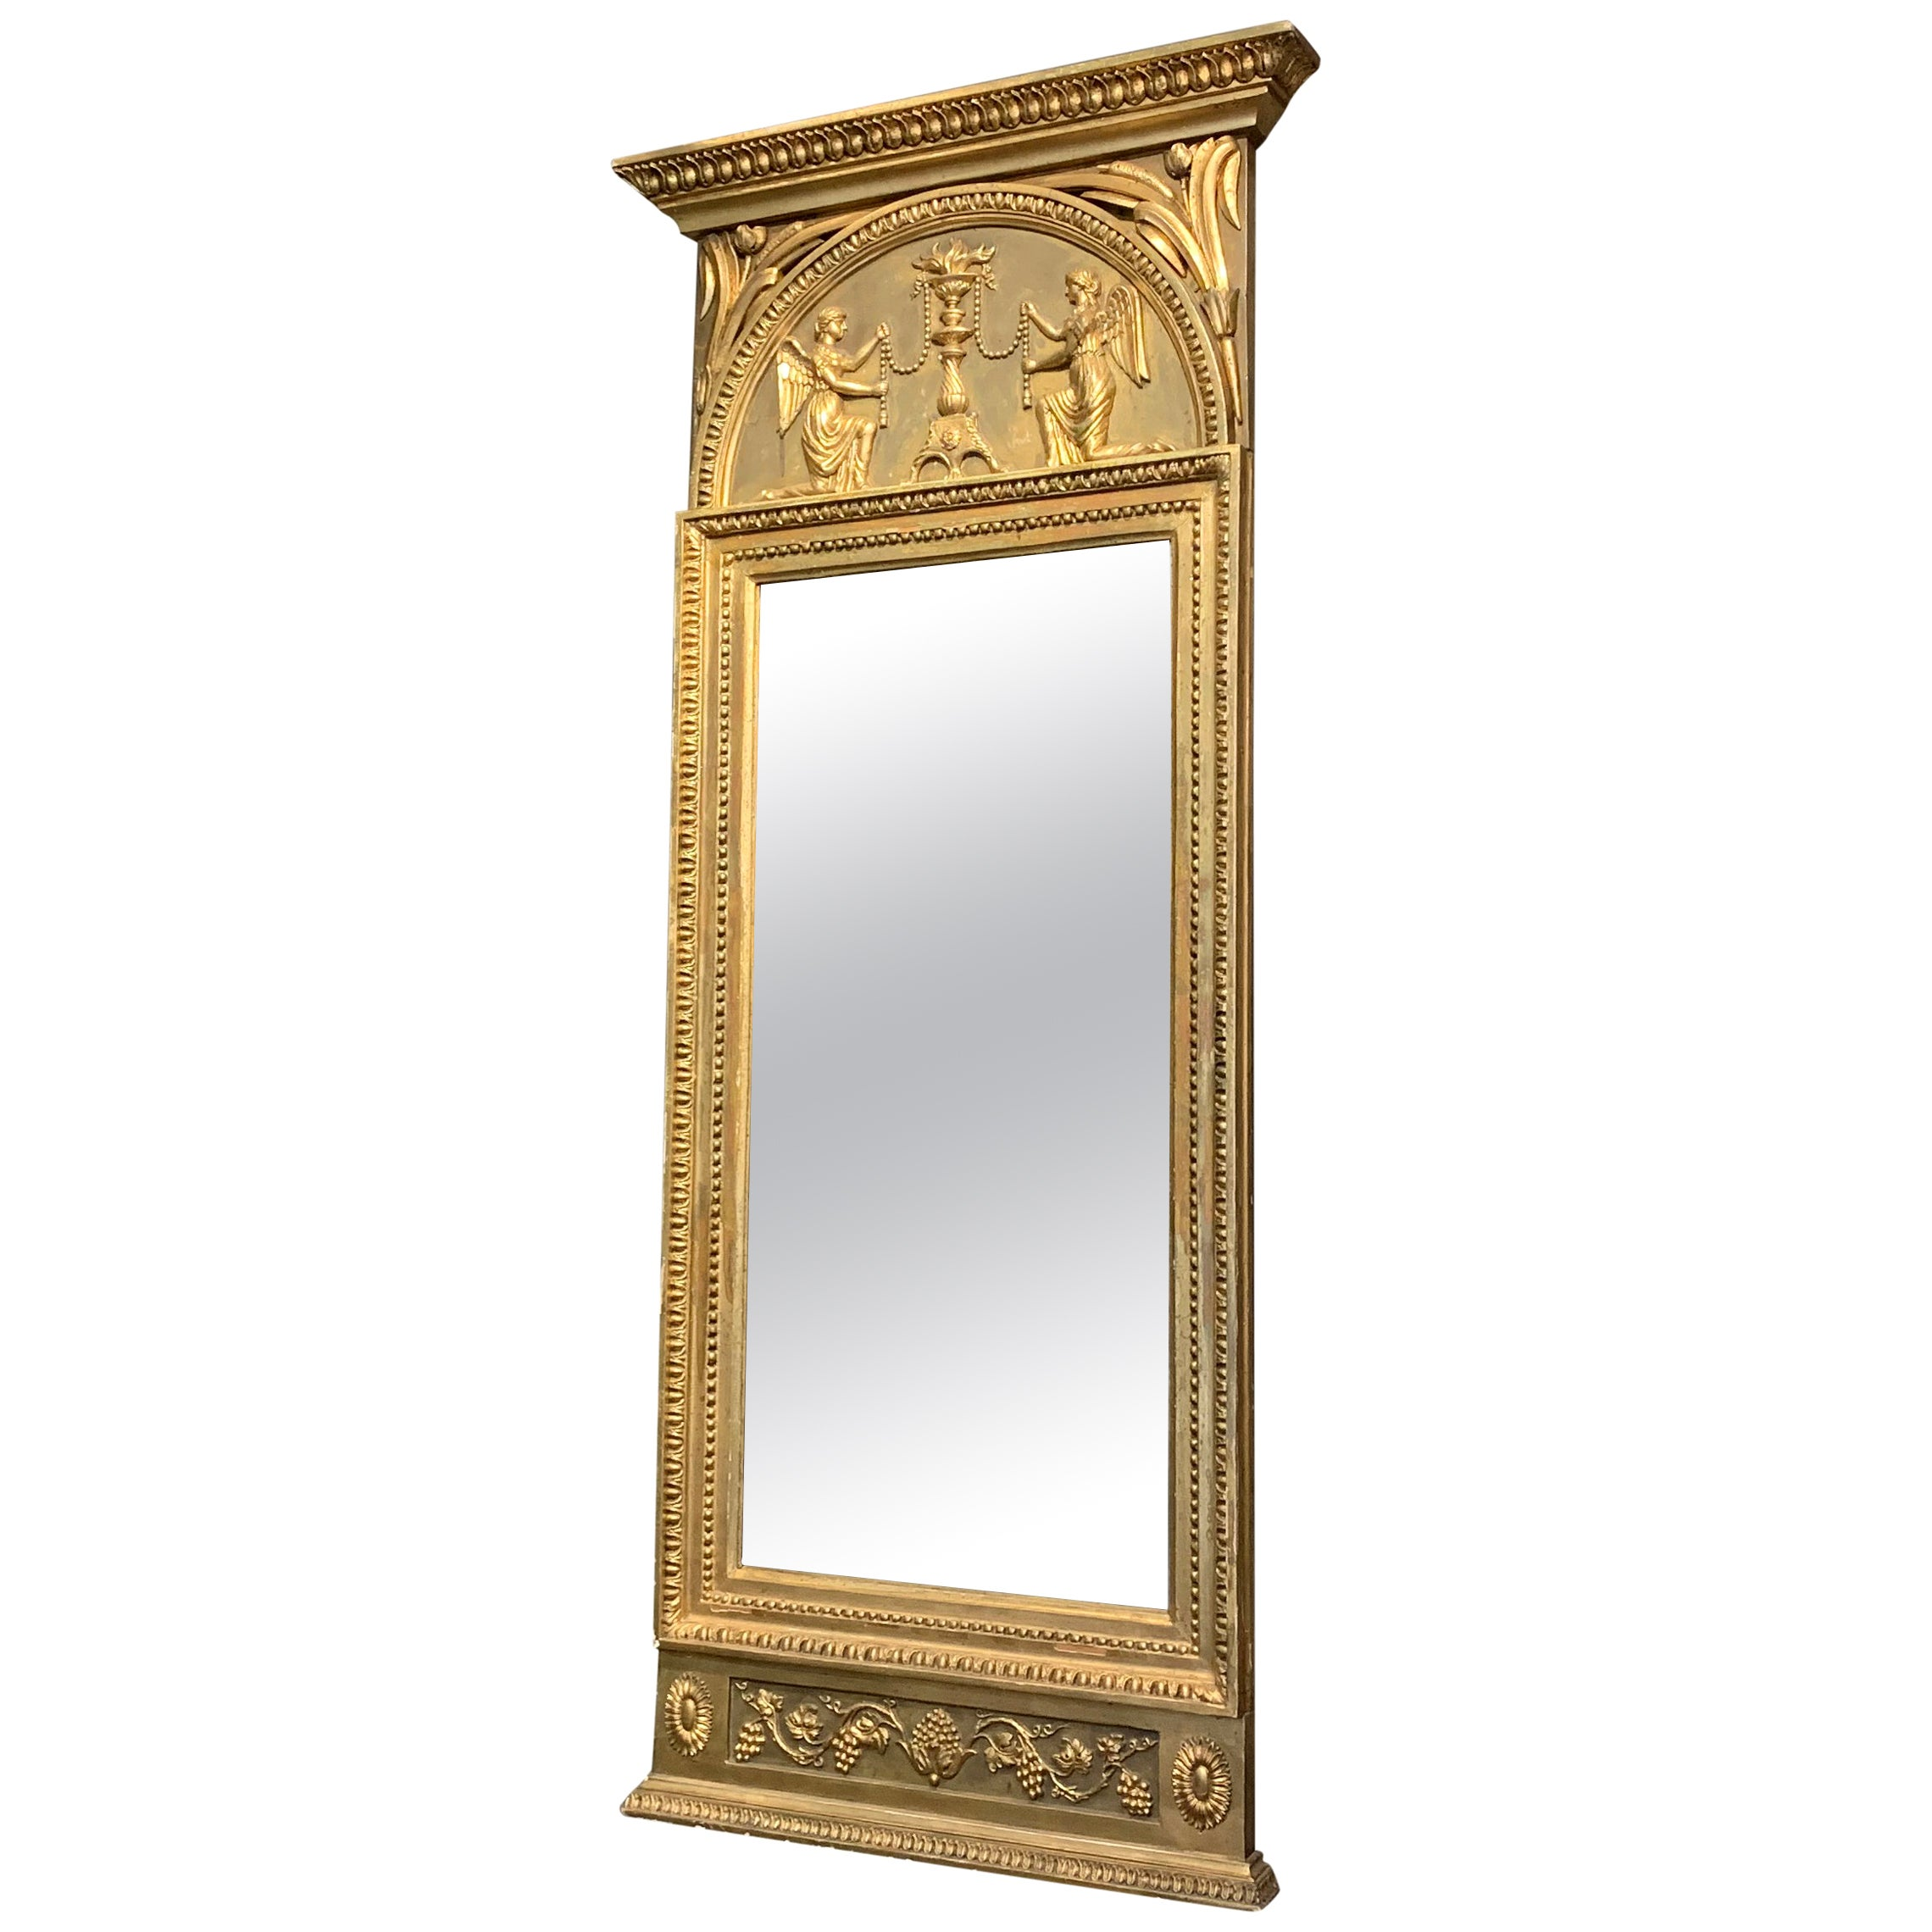 19th Century Swedish Gustavian Gilded Wood Wall Mirror